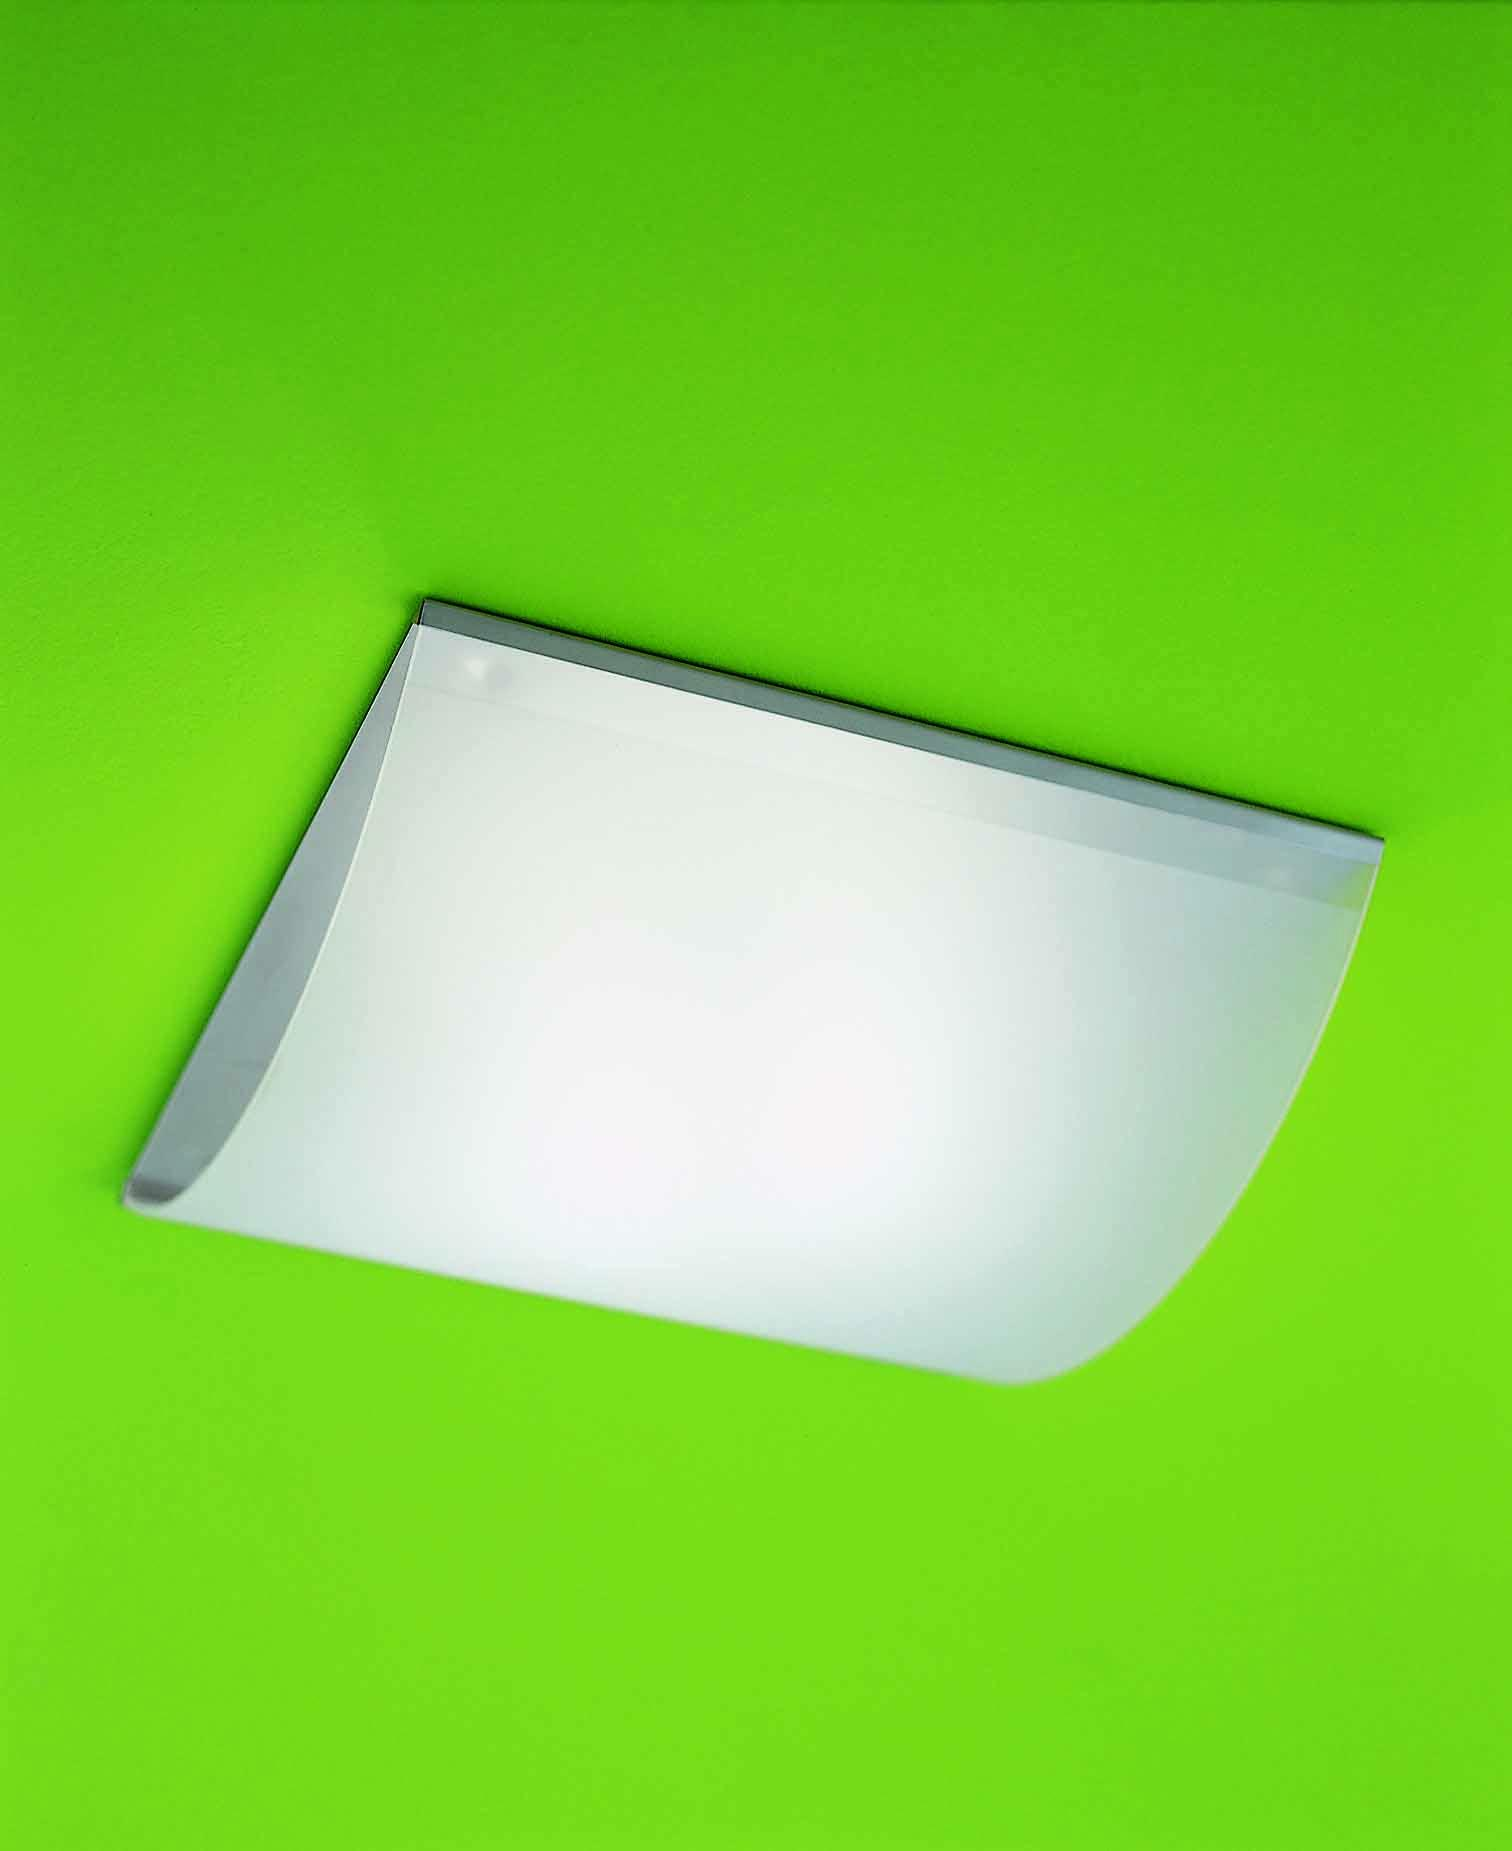 Applique o plafoniera in vetro NUMEA LED 45x45